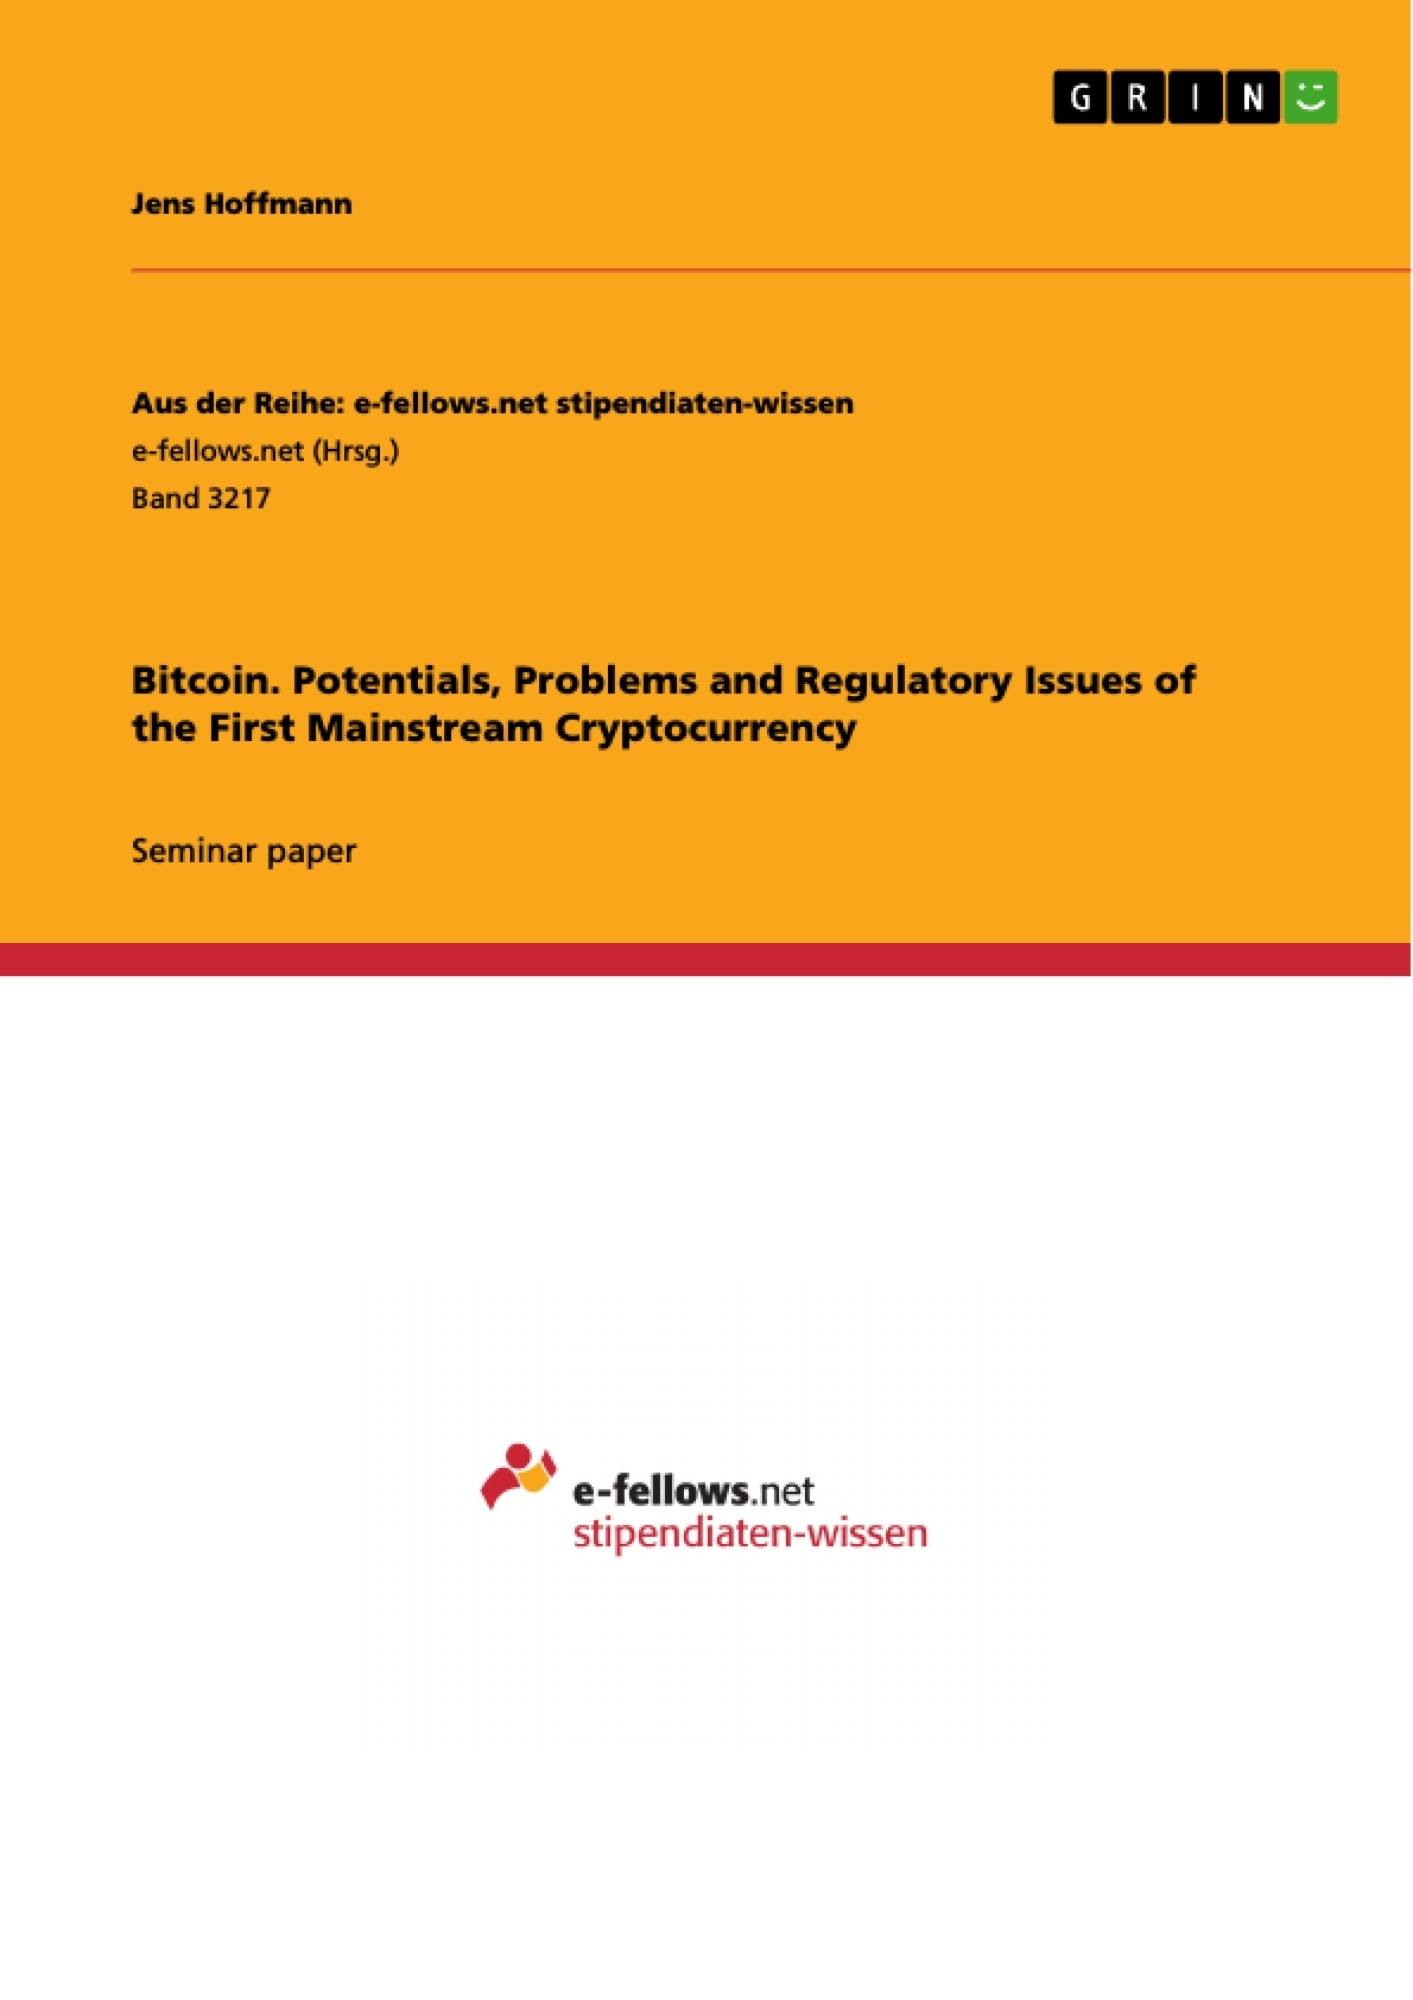 Title: Bitcoin. Potentials, Problems and Regulatory Issues of the First Mainstream Cryptocurrency